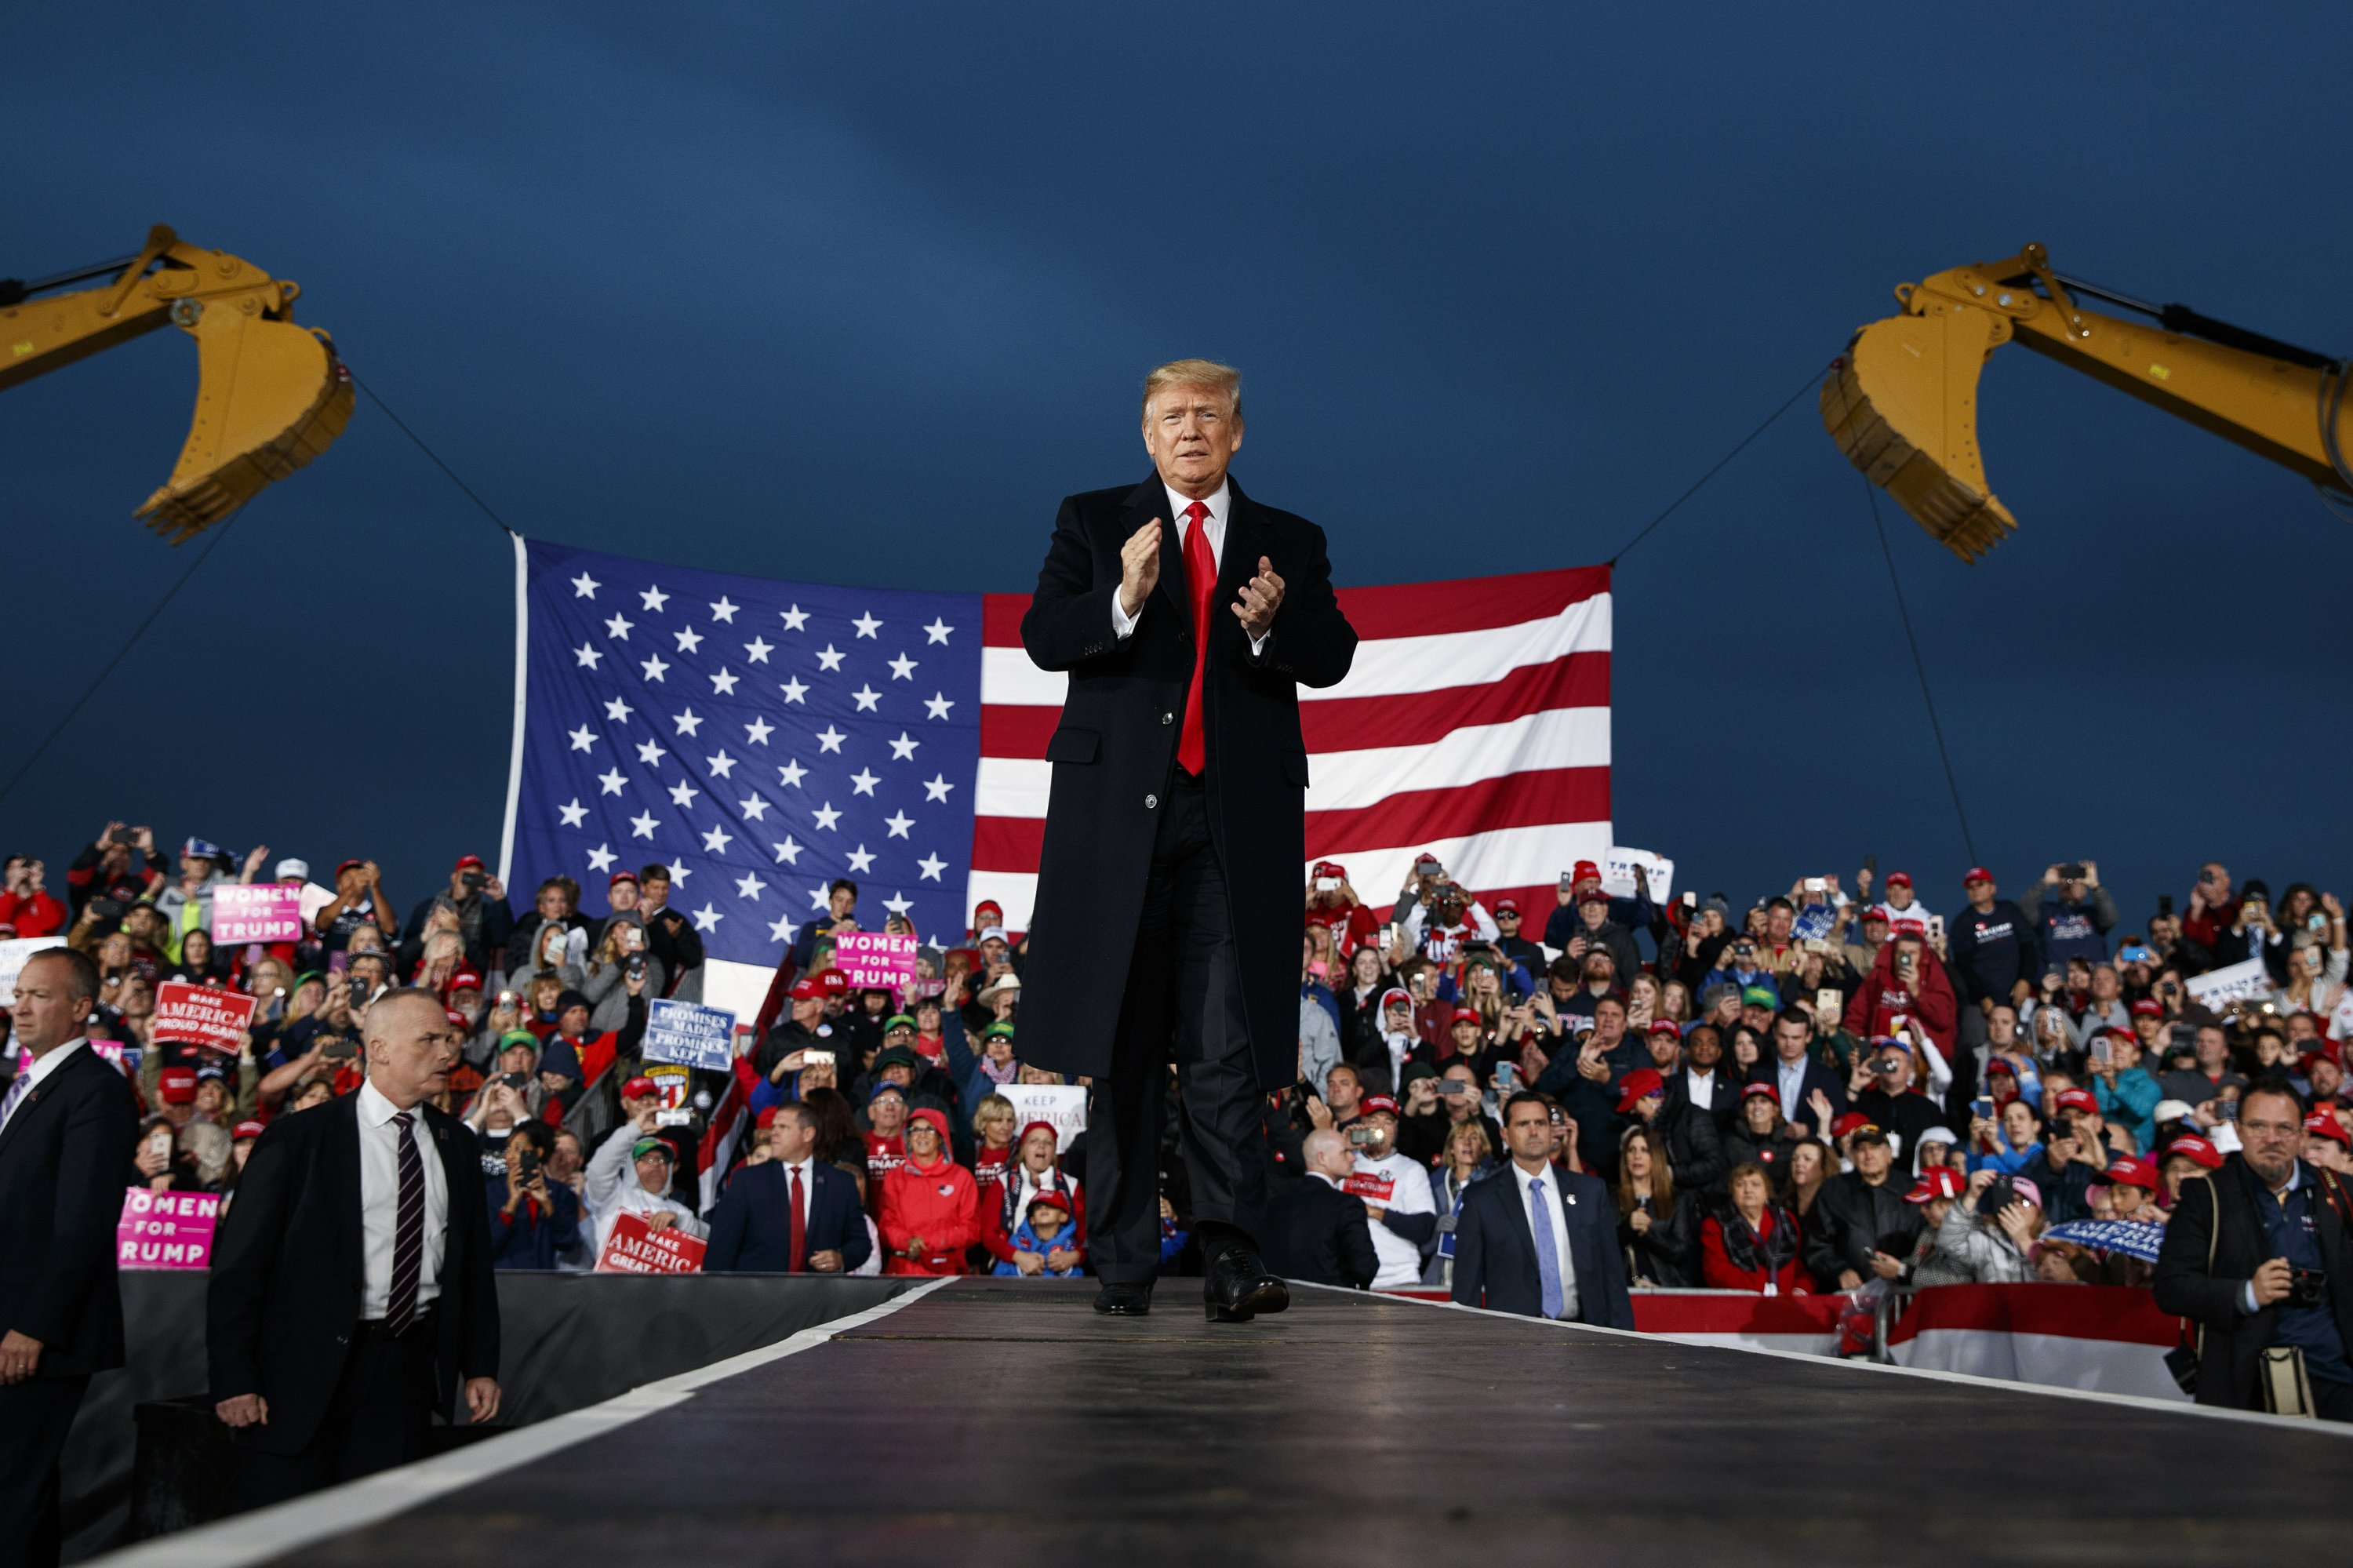 Trump urges Ohio supporters to vote GOP in November midterms